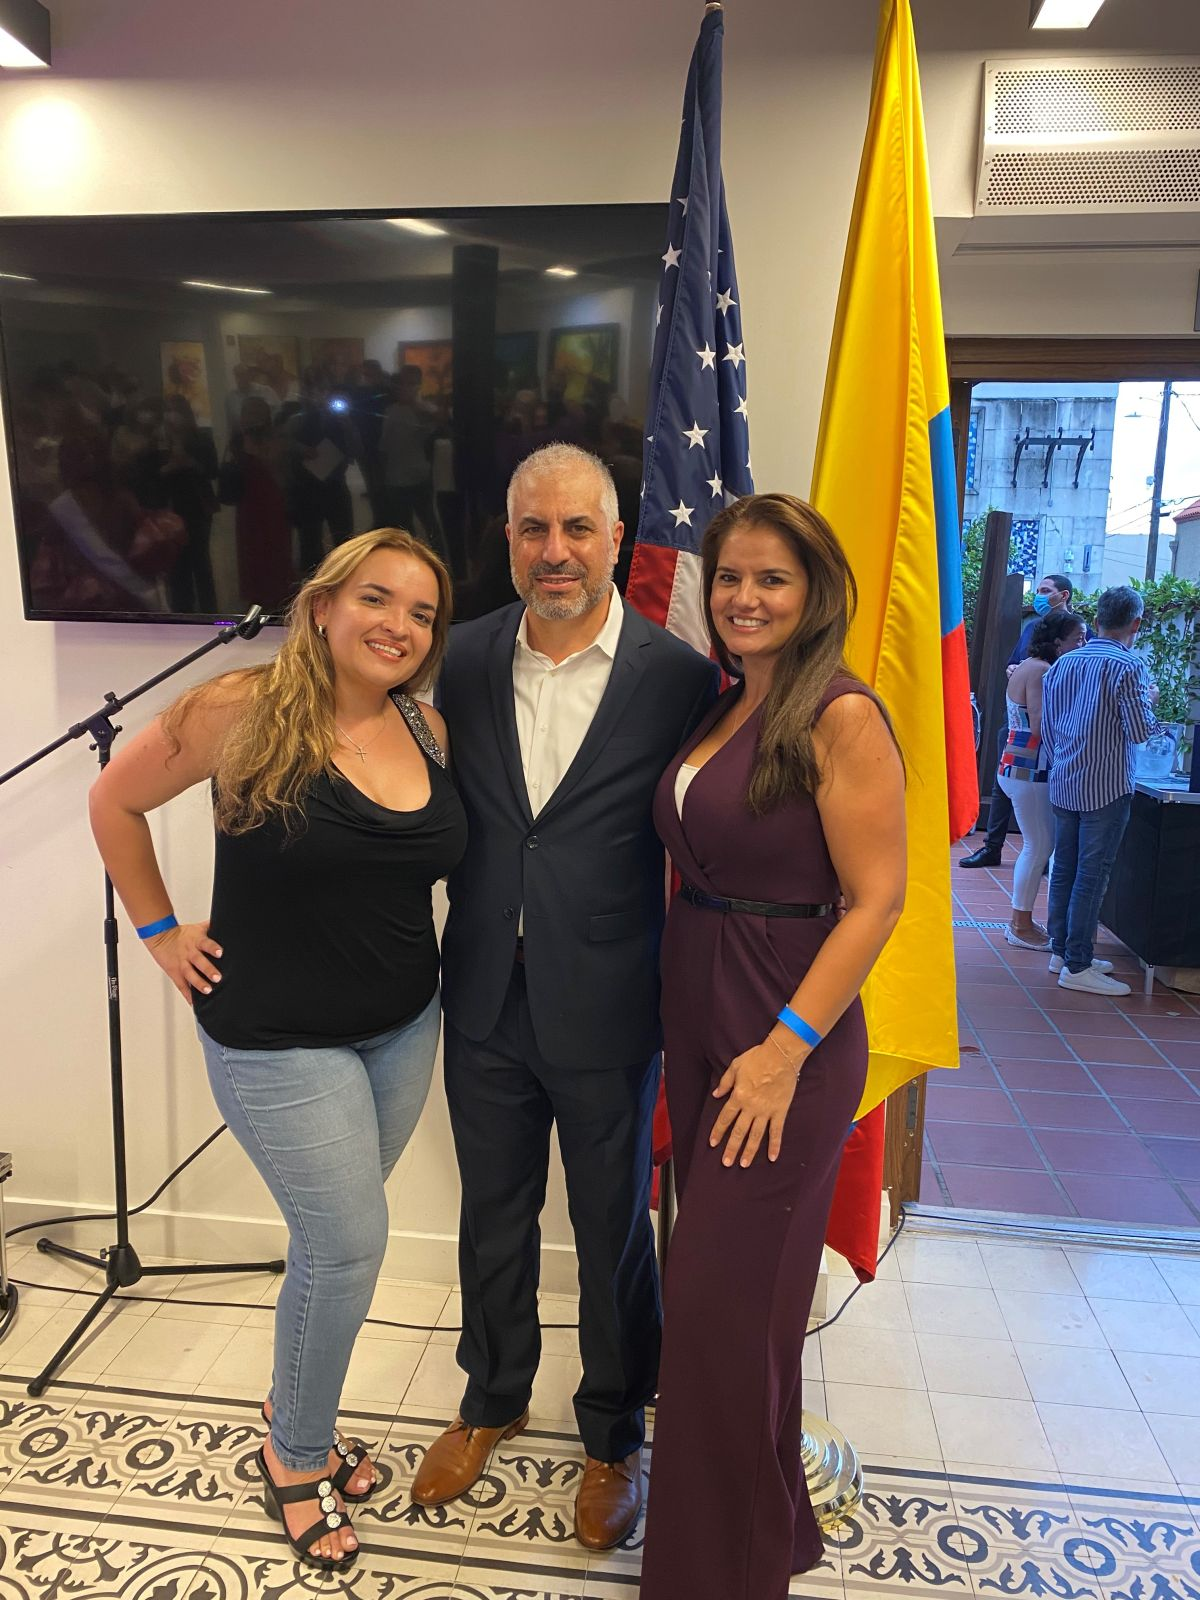 COLBAR celebrating Colombia's Indepedence at Colombia's Consulate in Coral Gables